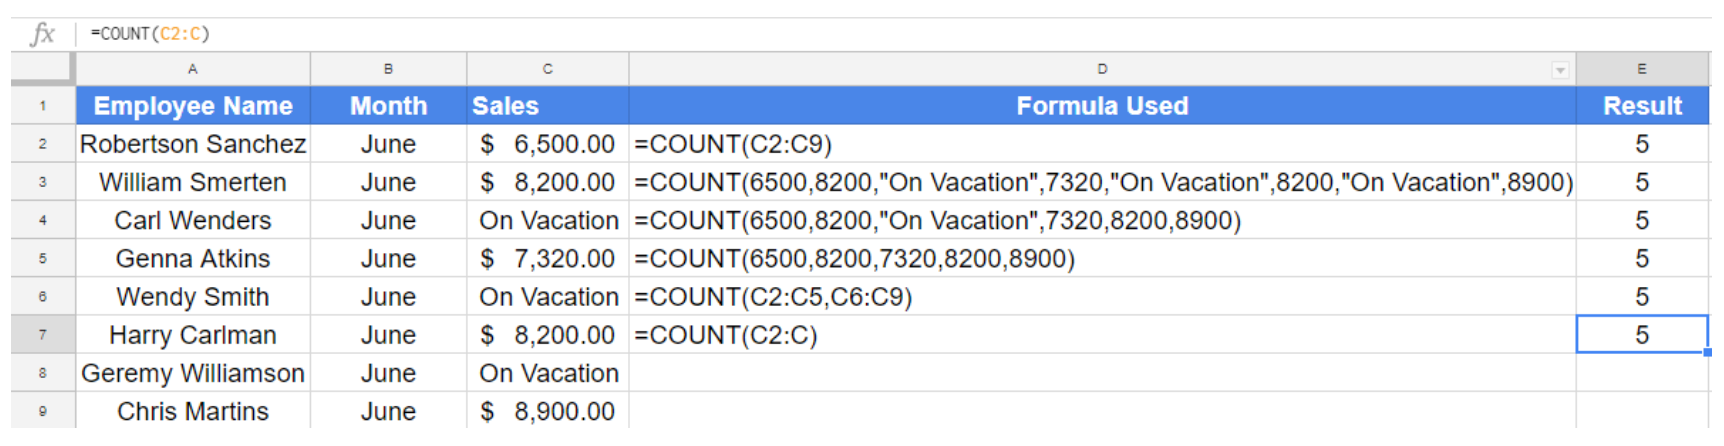 How to Use the Count Function in Google Sheets